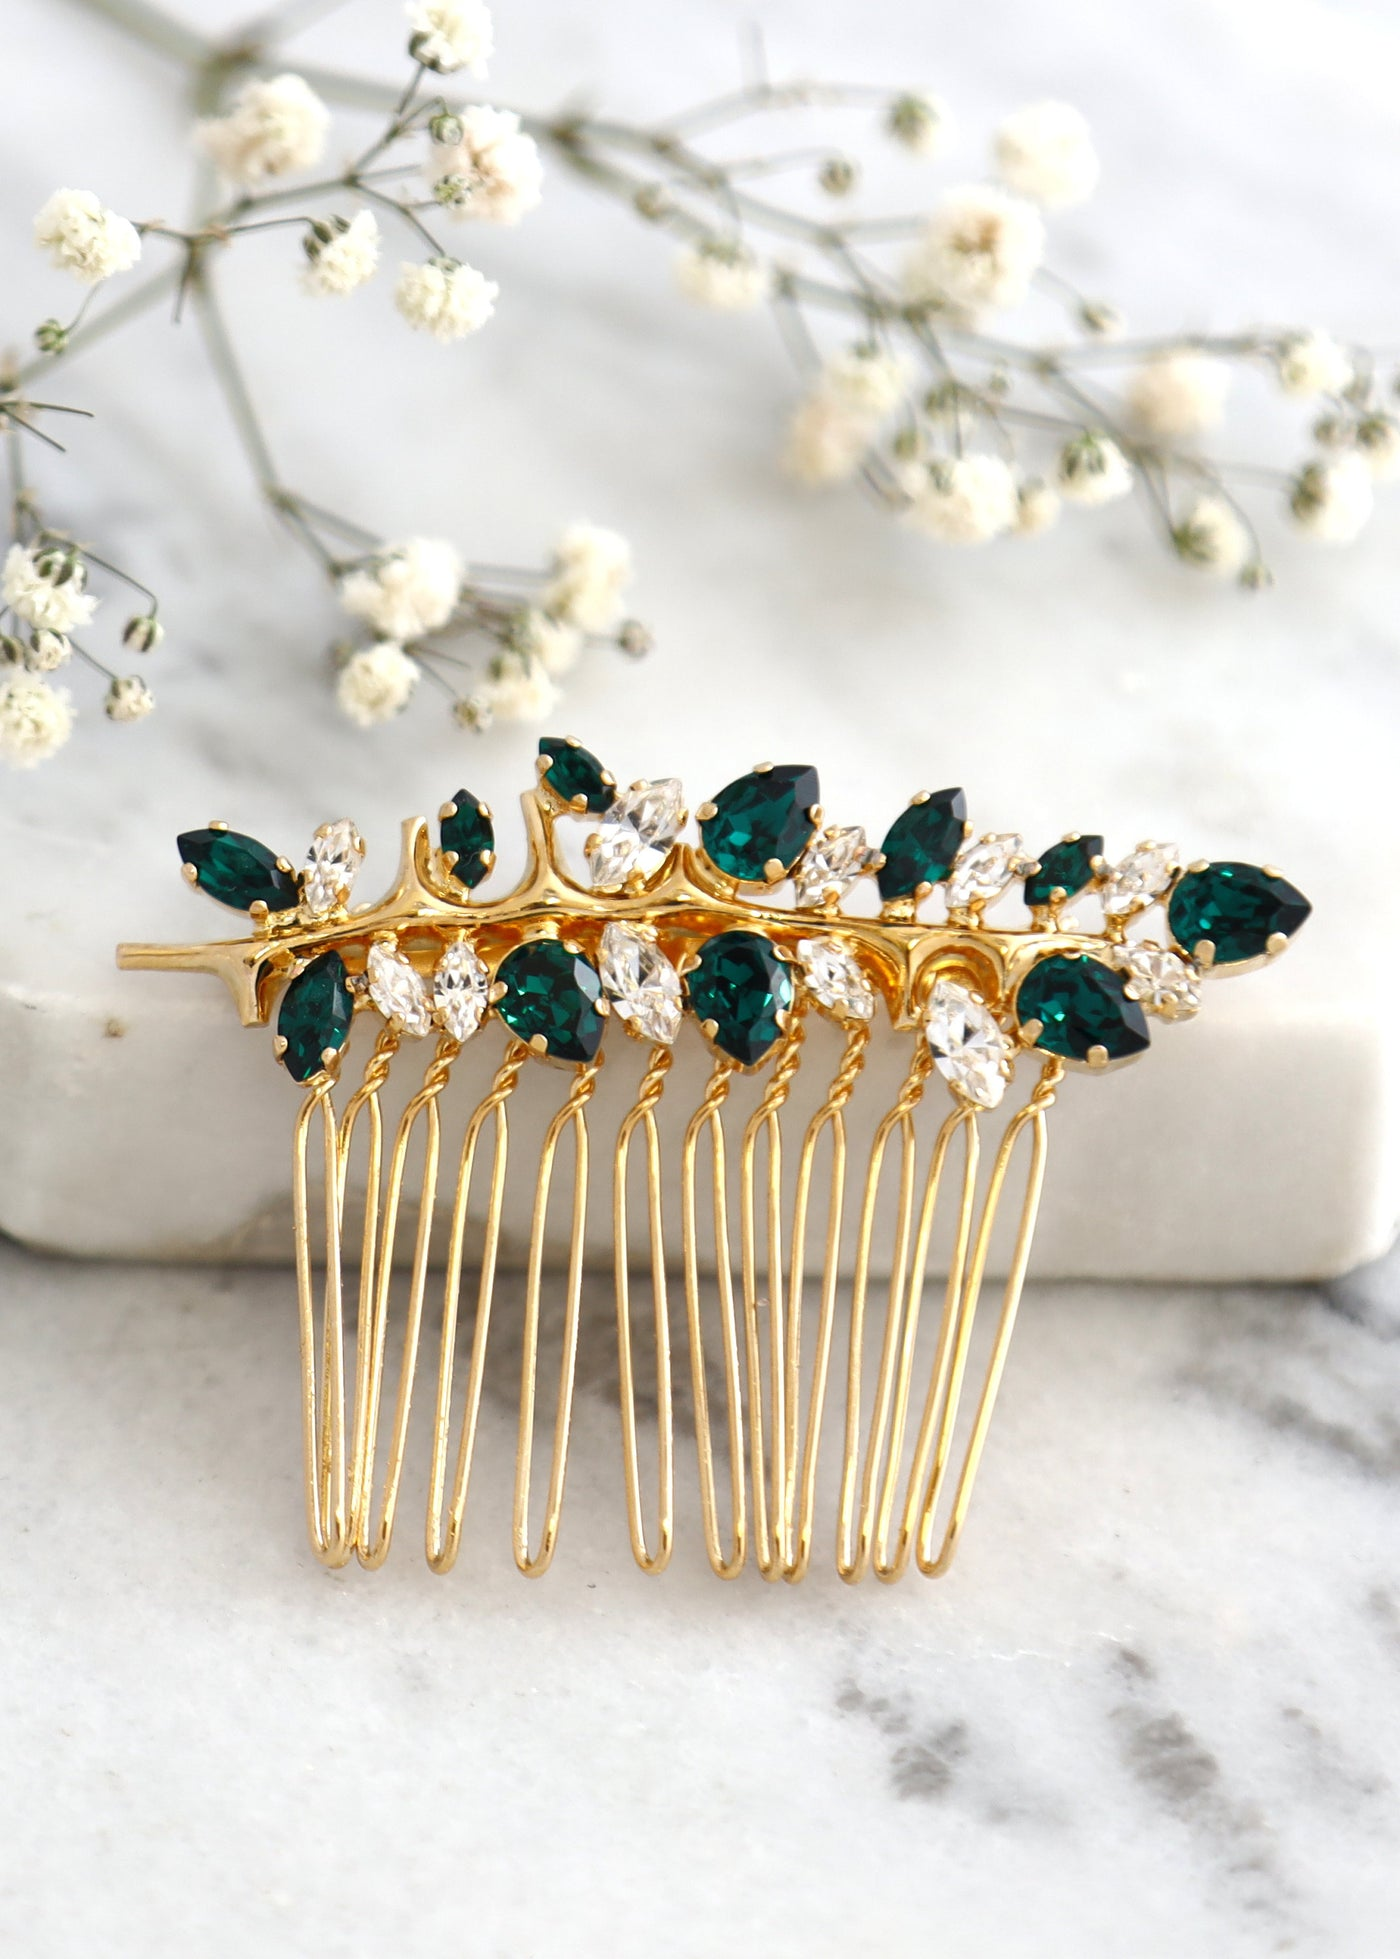 Bridal Emerald Green Hair Comb, Swarovski Hair Crystal Comb, Emerald Hair Comb, Bridal Hair Accessories, Green Hair Comb, Bridal Hair Comb